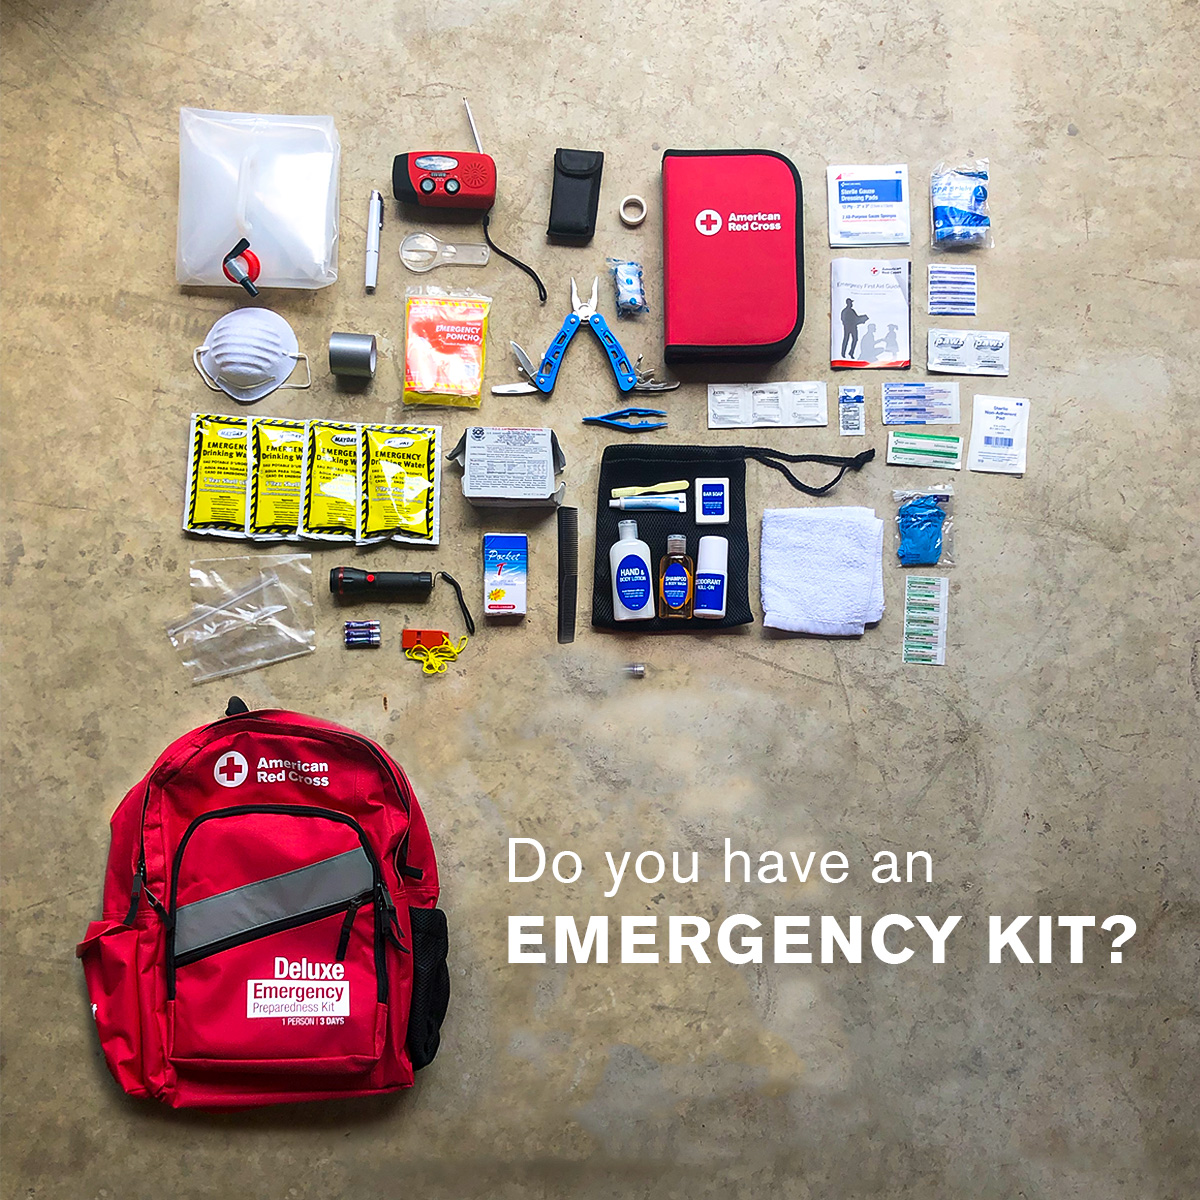 do-you-have-an-emergency-kit